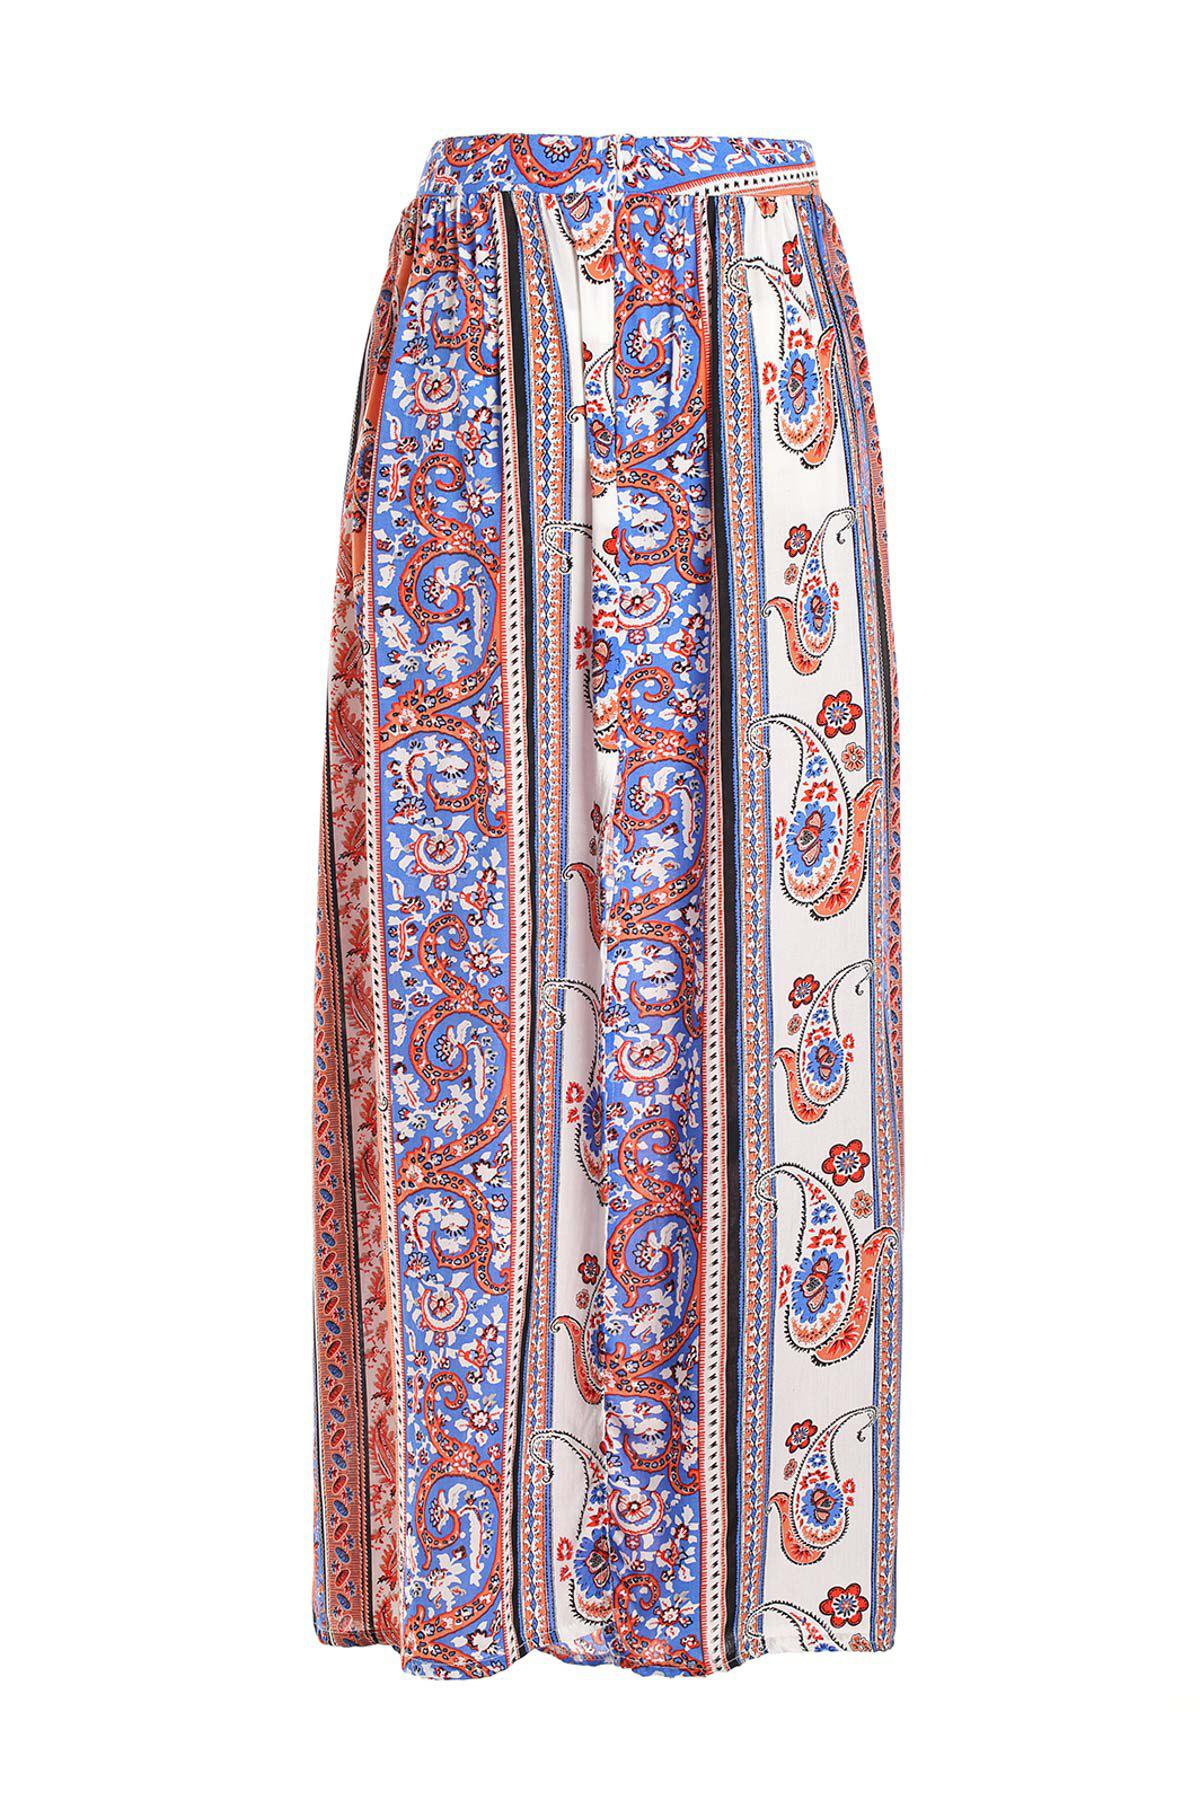 Stylish High Waisted Vintage Print Women's Maxi Skirt - JACINTH M